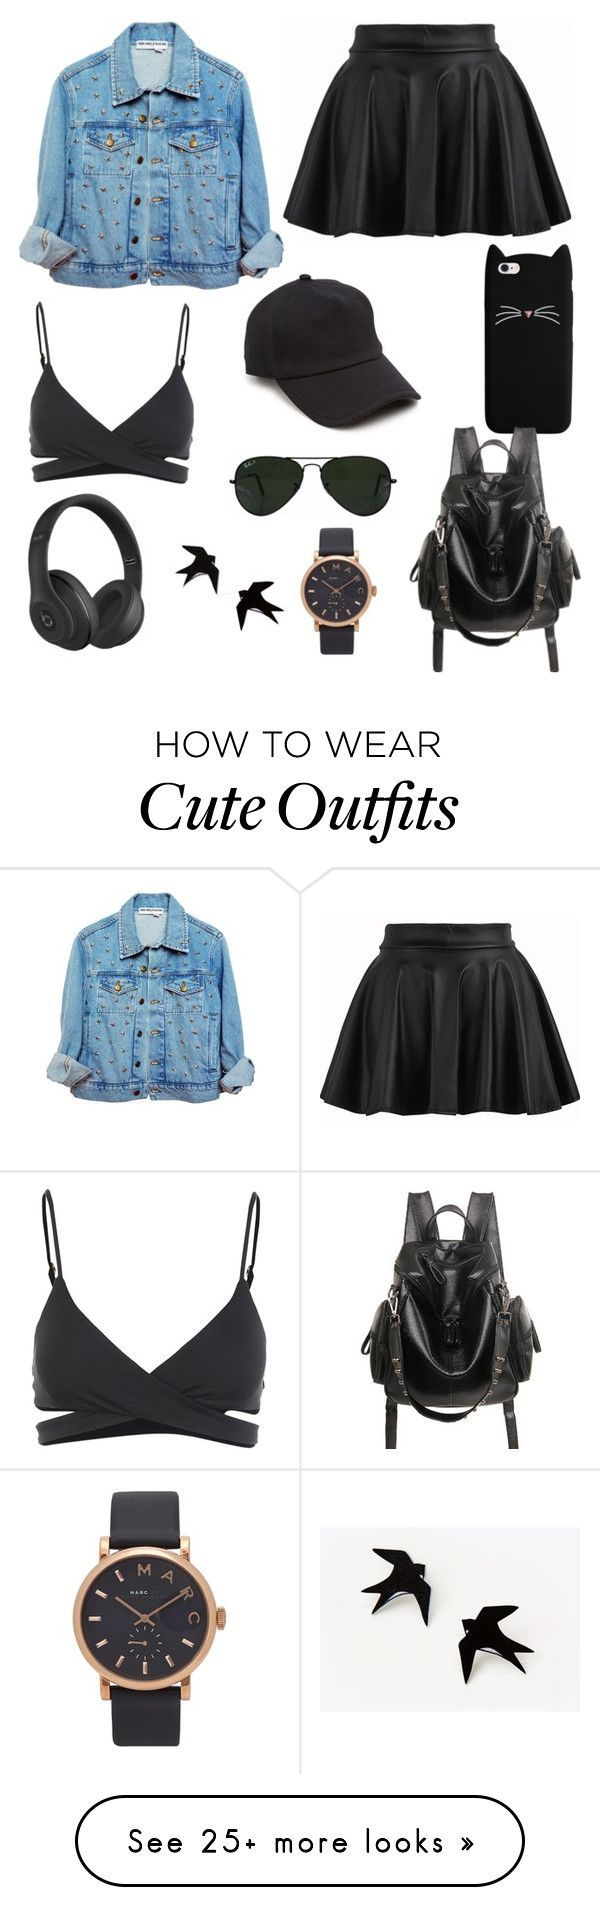 """Outfit #29"" by nemeanlion on Polyvore featuring L*Space, rag & bone, Ray-Ban, Beats by Dr. Dre and Marc Jacobs"